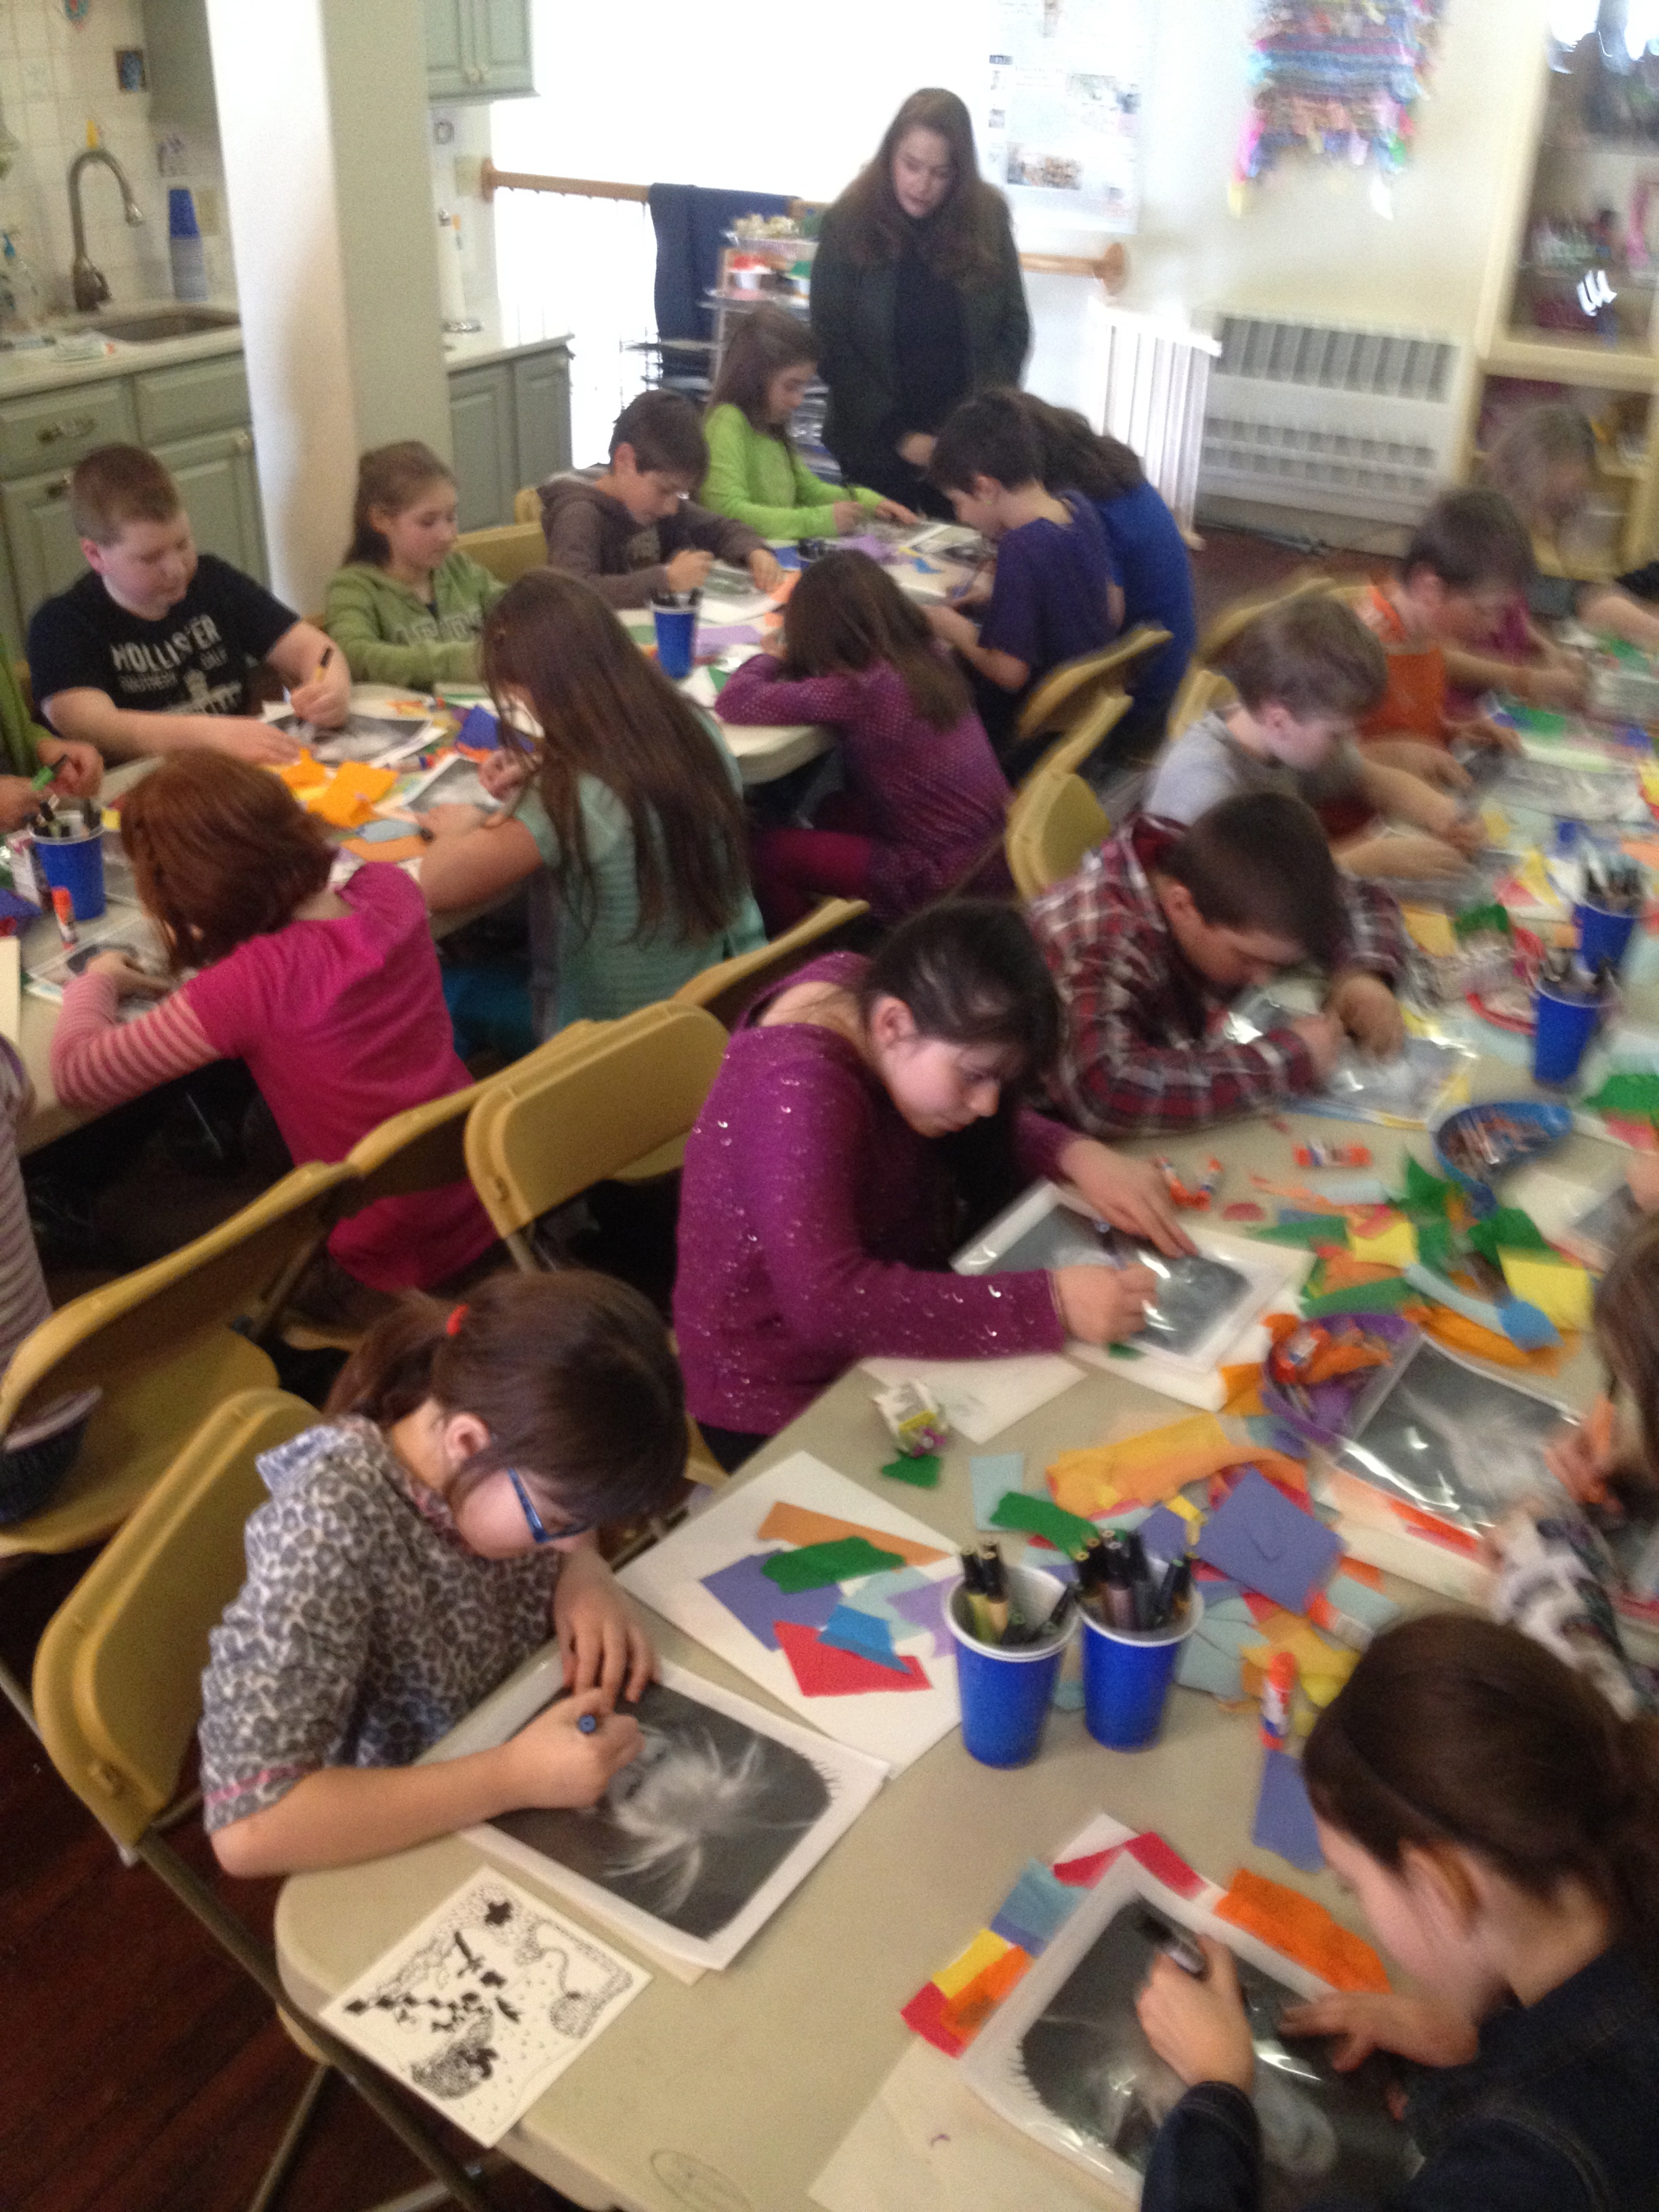 I instructed over 100 students in the Aroostook County area's Gifted and Talented programs in a project inspired by Andy Warhol, portraiture, and layering images and materials.